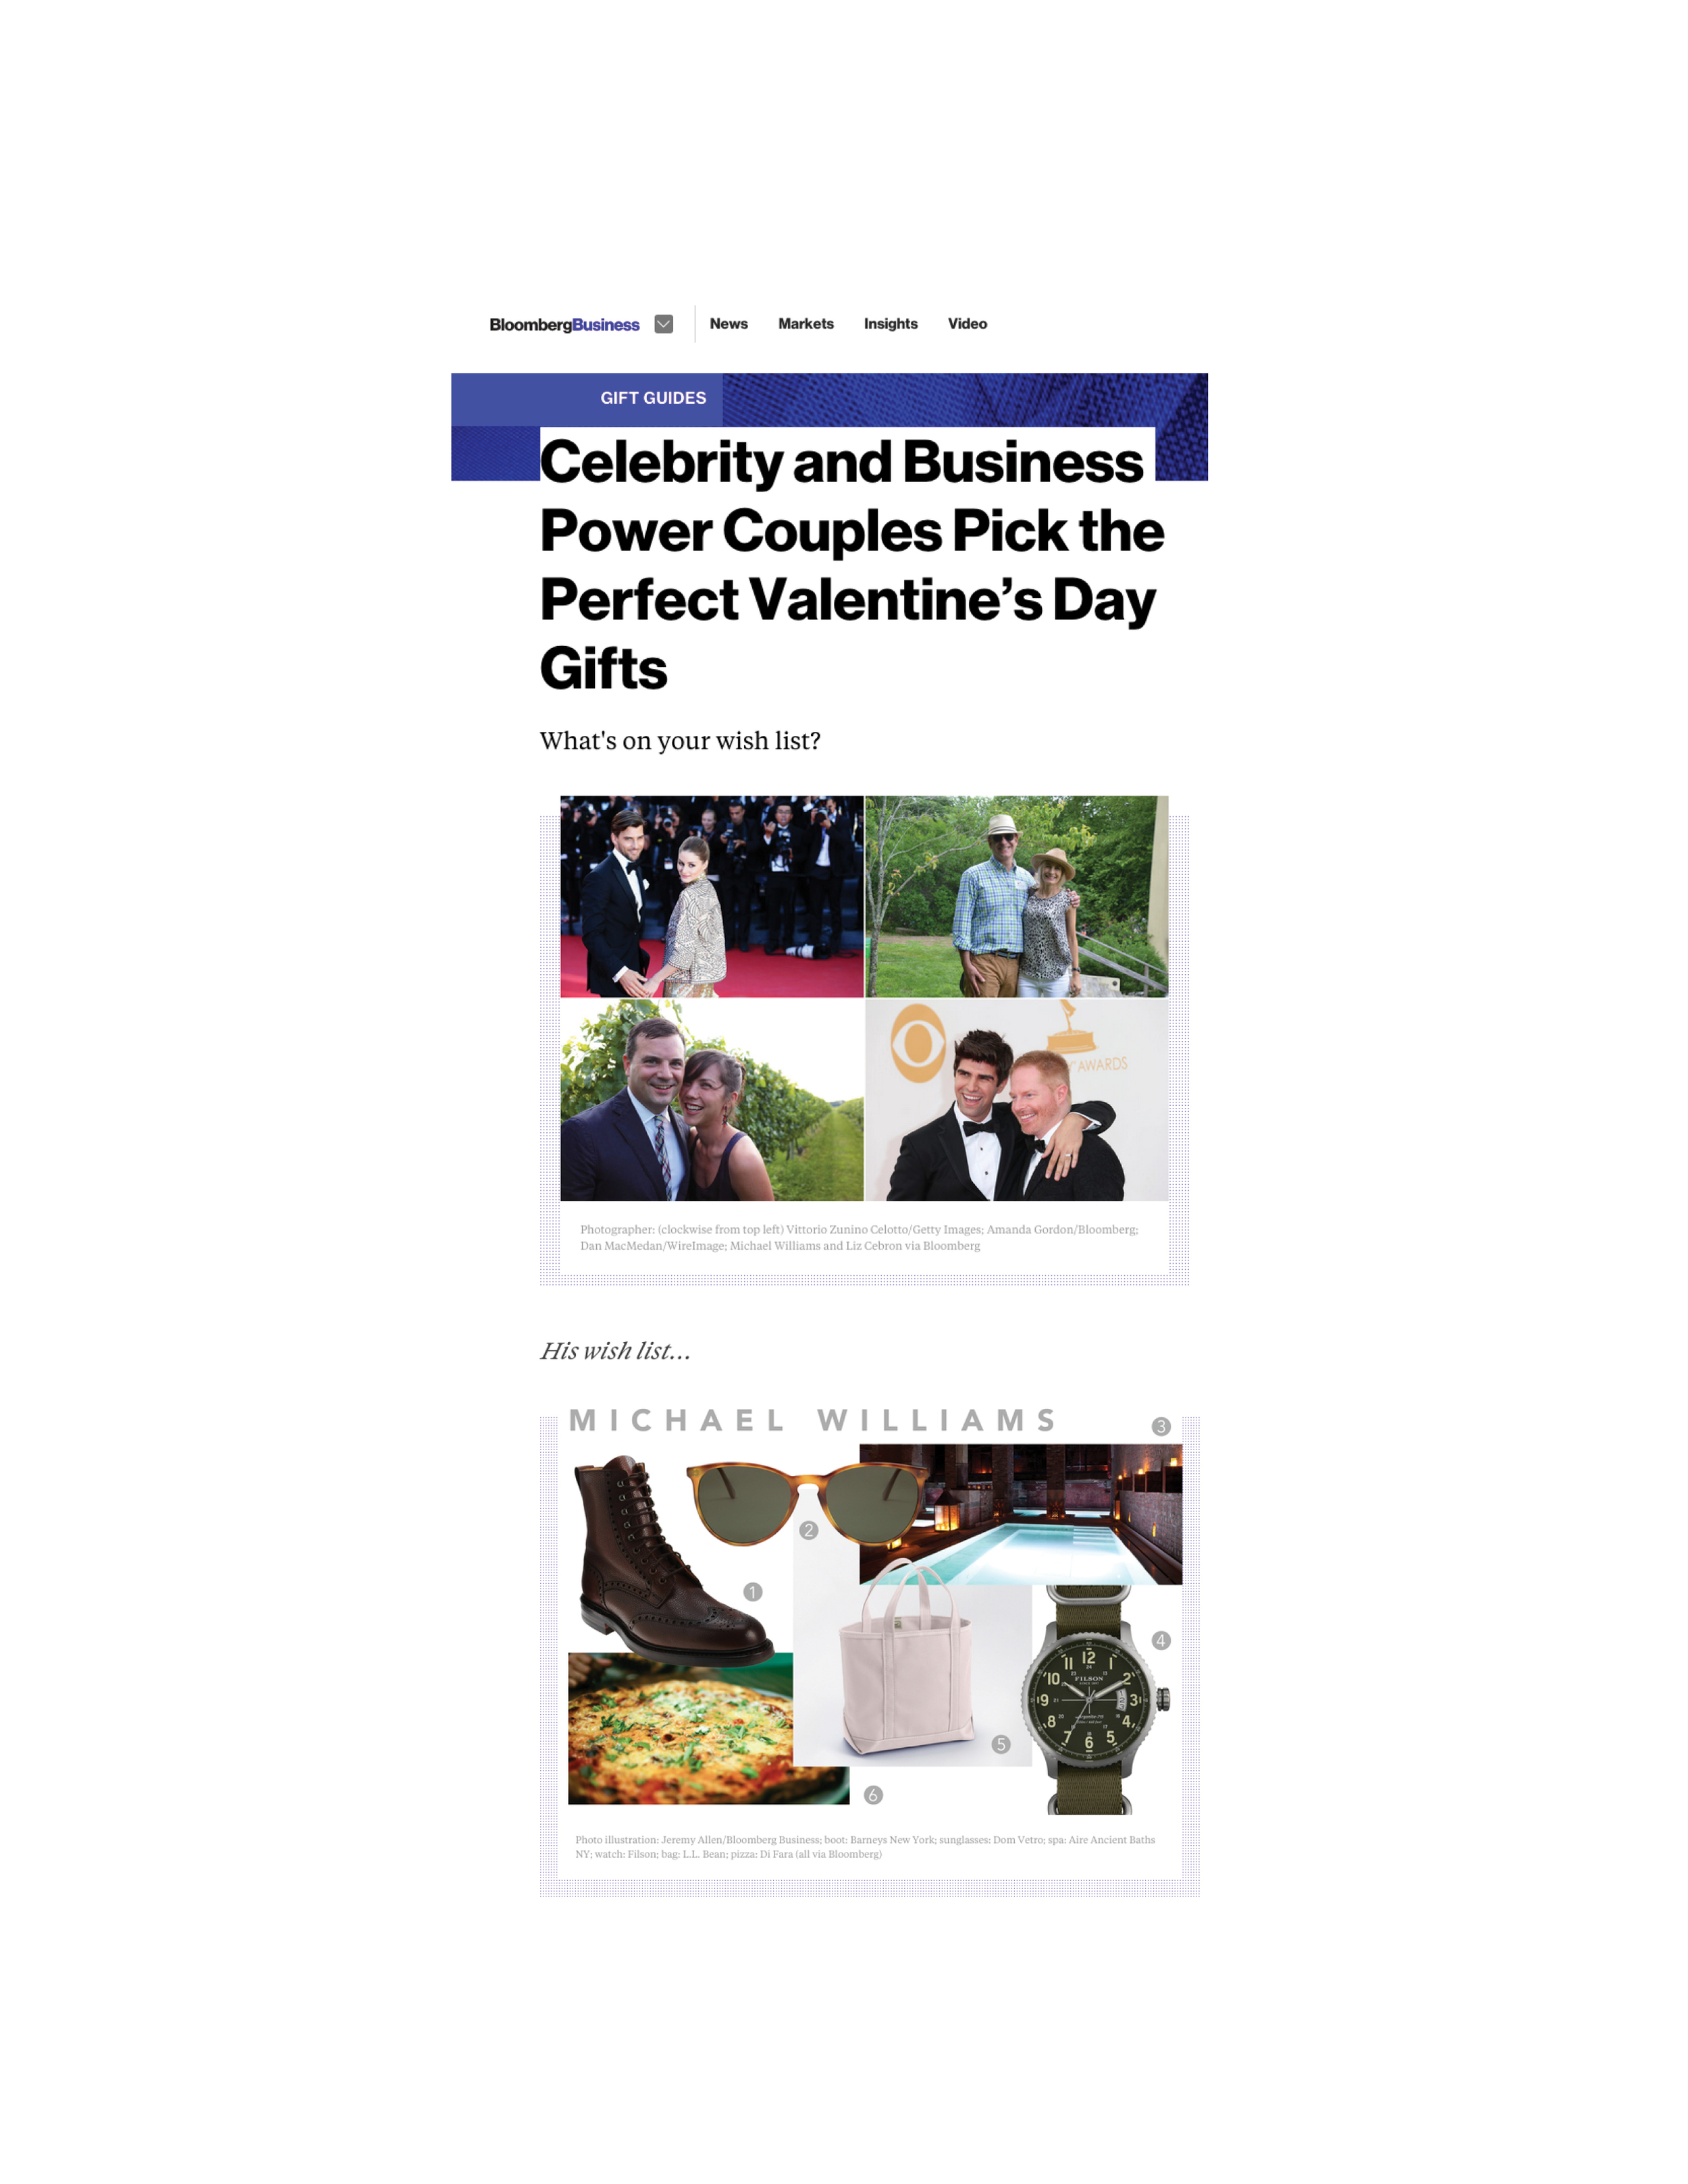 Bloomberg   Perfect Valentine's Day Gift